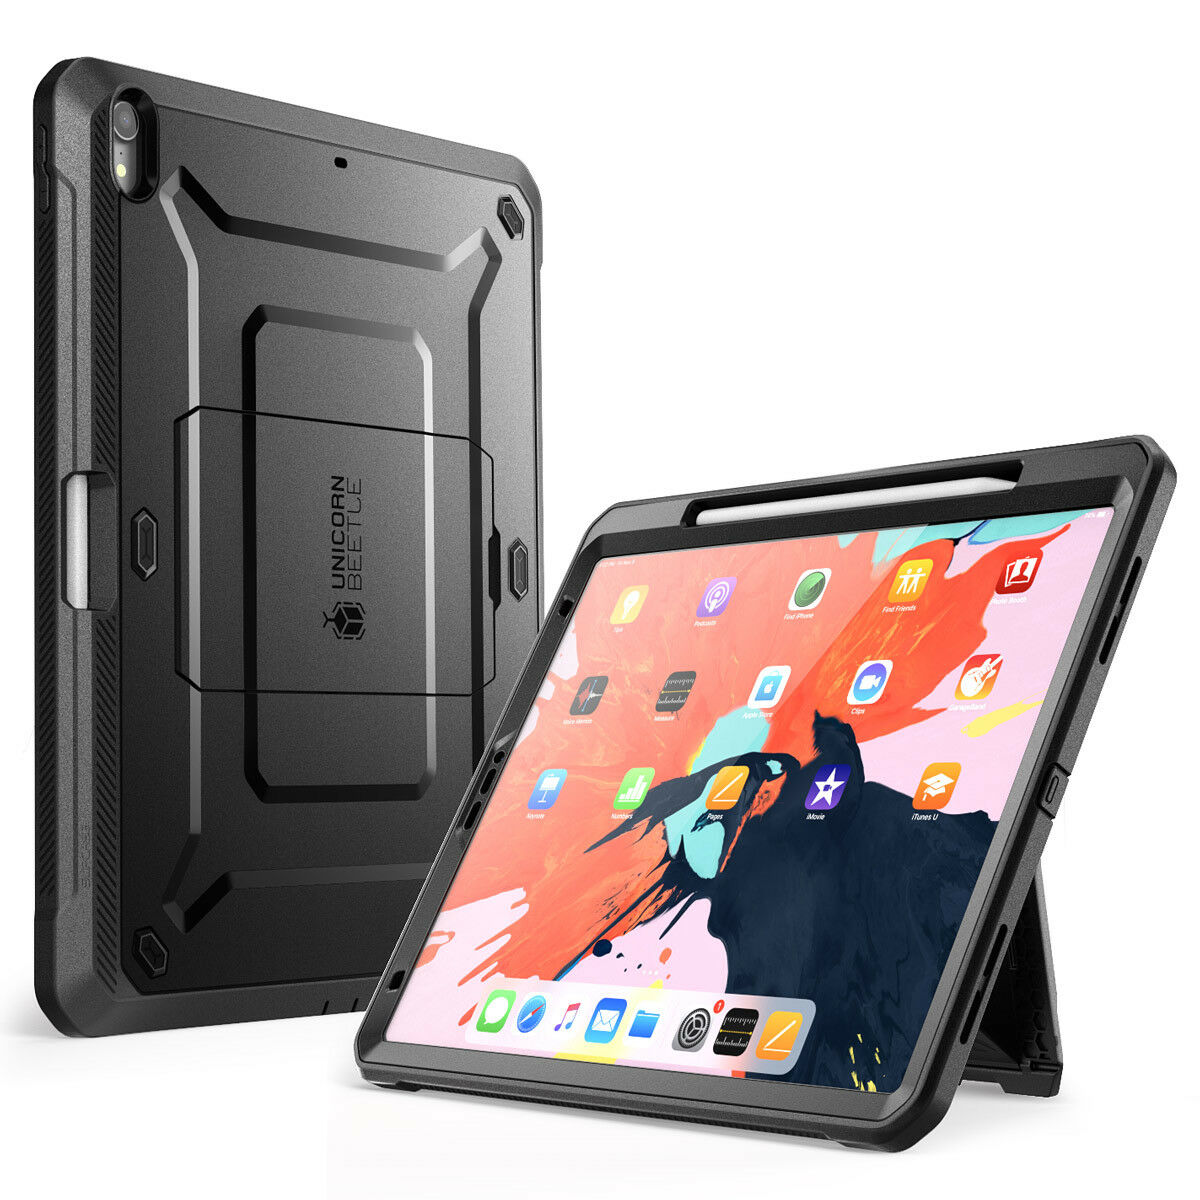 sports shoes caf11 daf5a Details about SUPCASE iPad Pro 12.9 Case Cover 2018 Support Apple Pencil  Charging w/ Kickstand